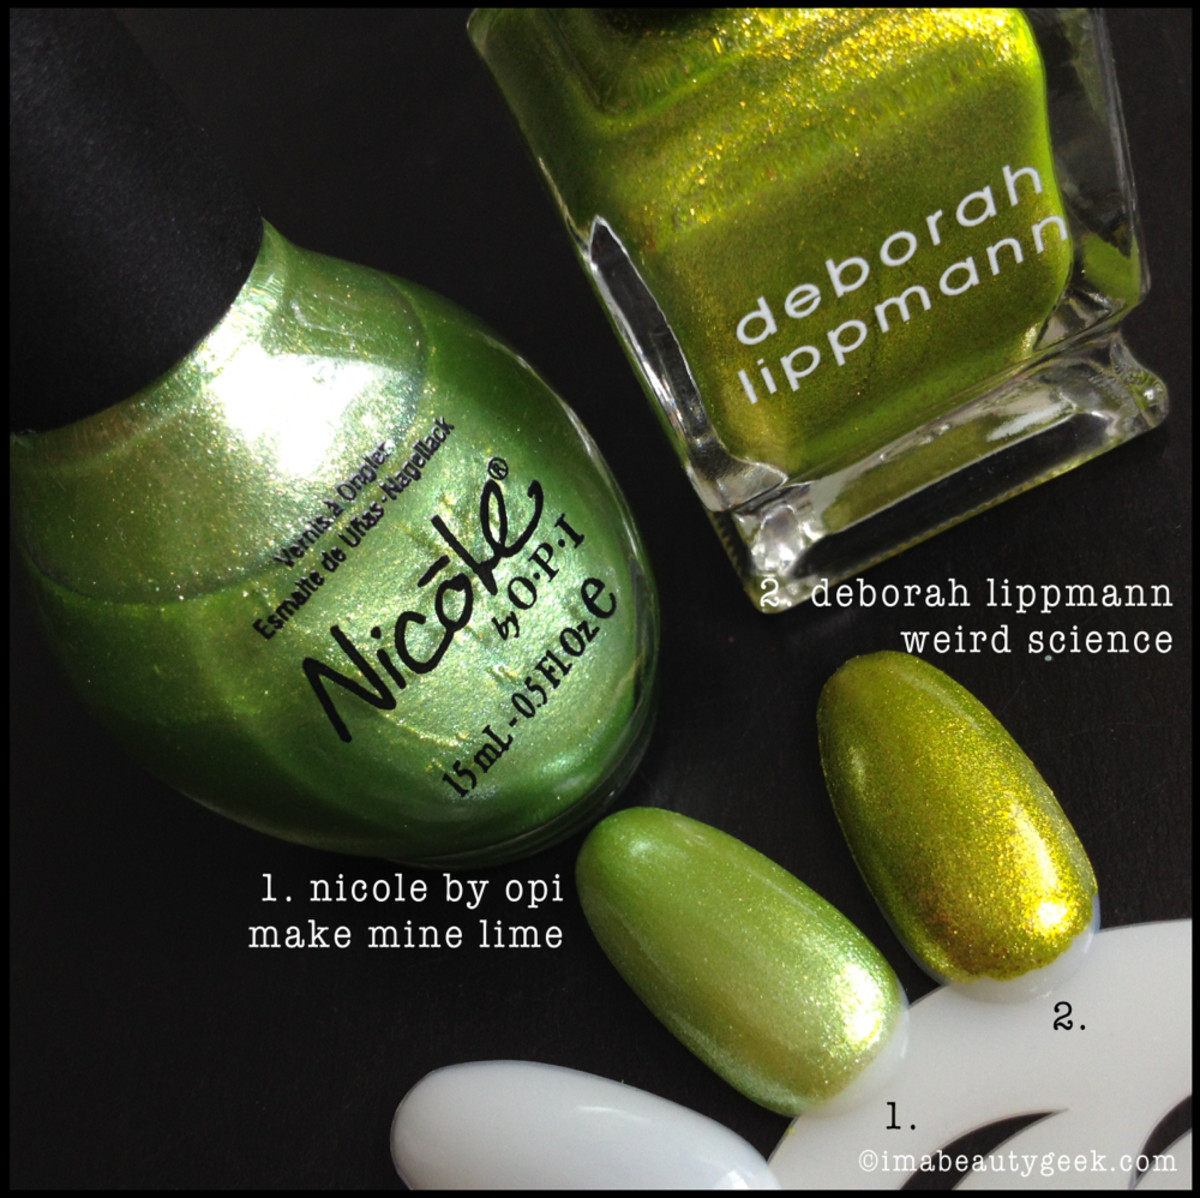 Deborah Lippmann Weird Science Comparison Swatch